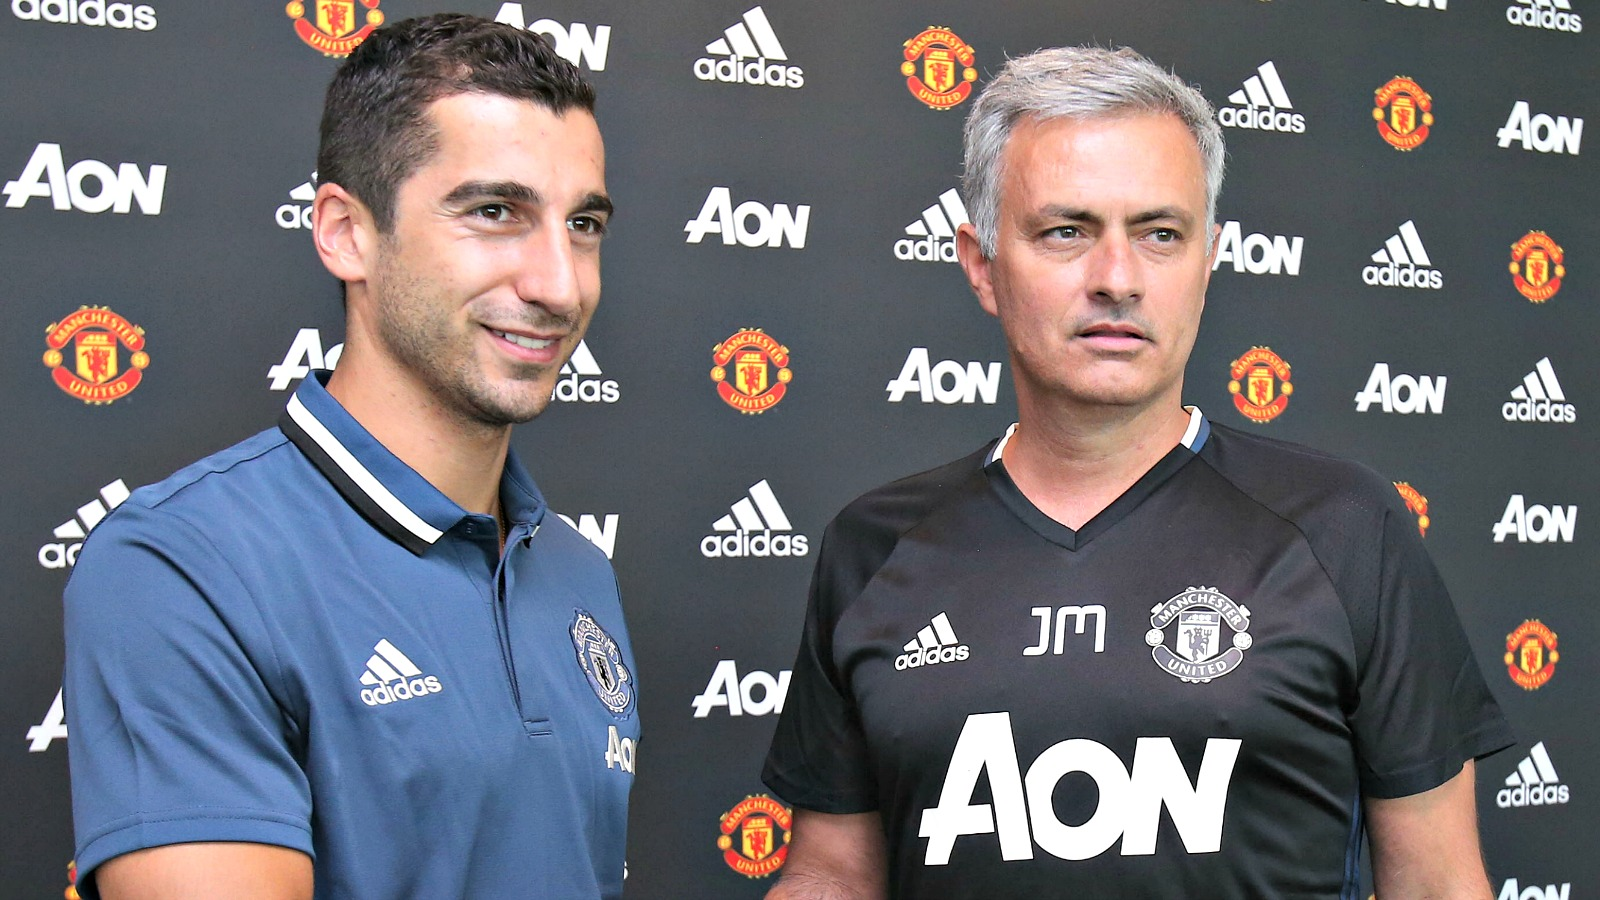 Mourinho continues overhaul as Mkhitaryan joins Manchester United